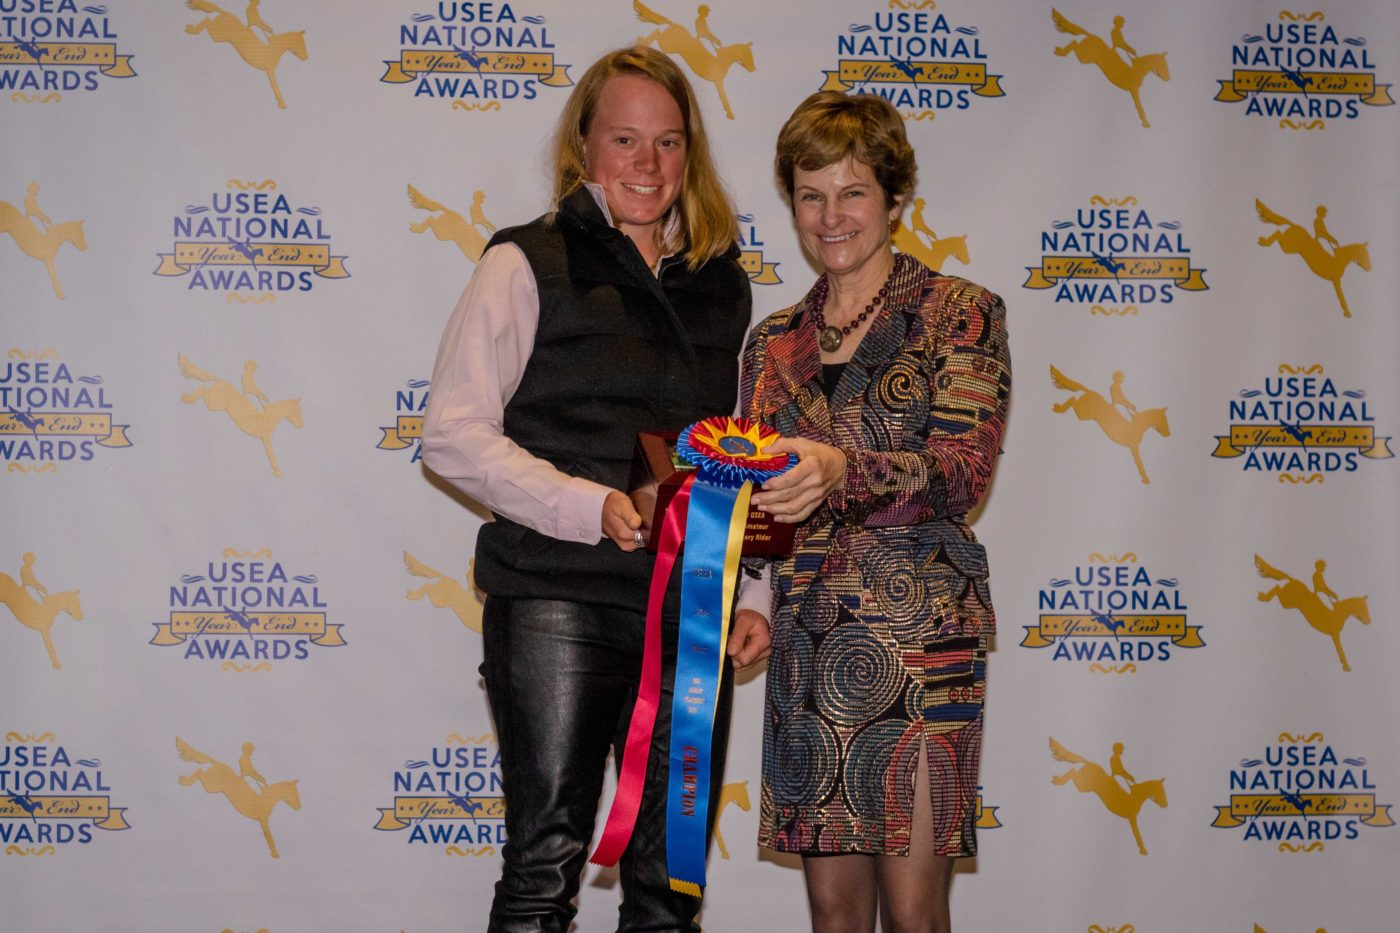 Preliminary Adult Amateur Rider and Intermediate Adult Amateur Rider of the Year: Arden Wildasin.